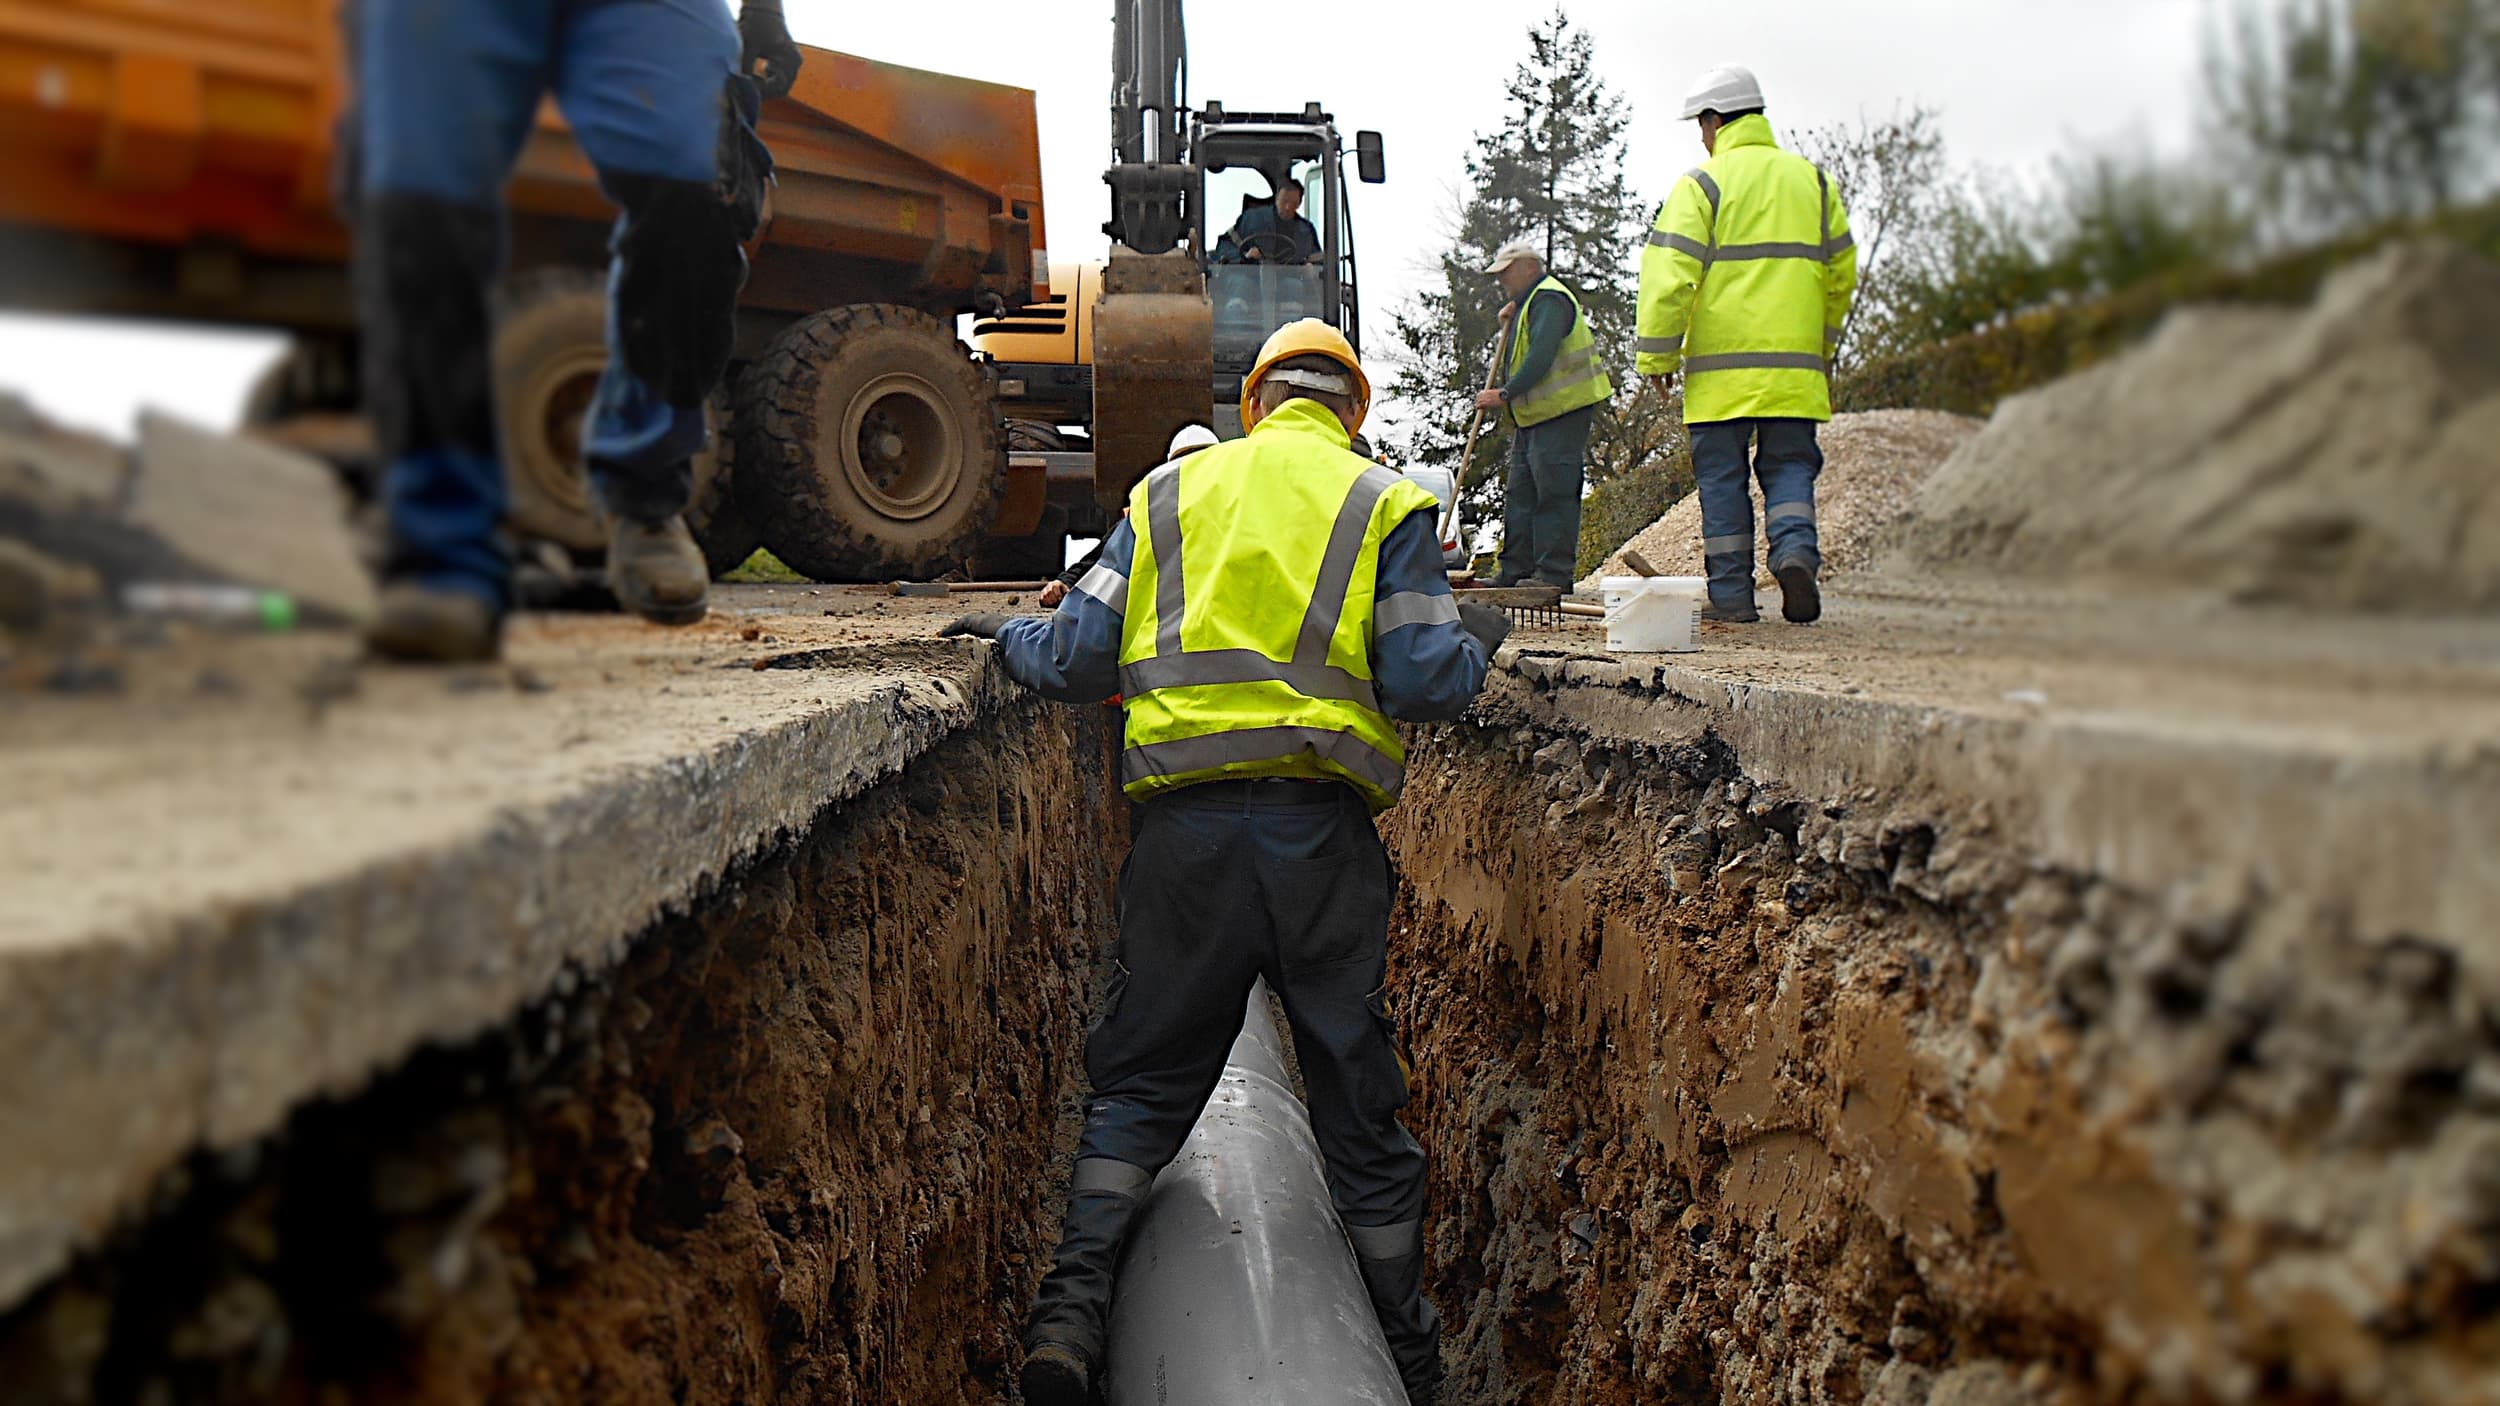 Compliance Training Online Trenching & Excavation Safety course